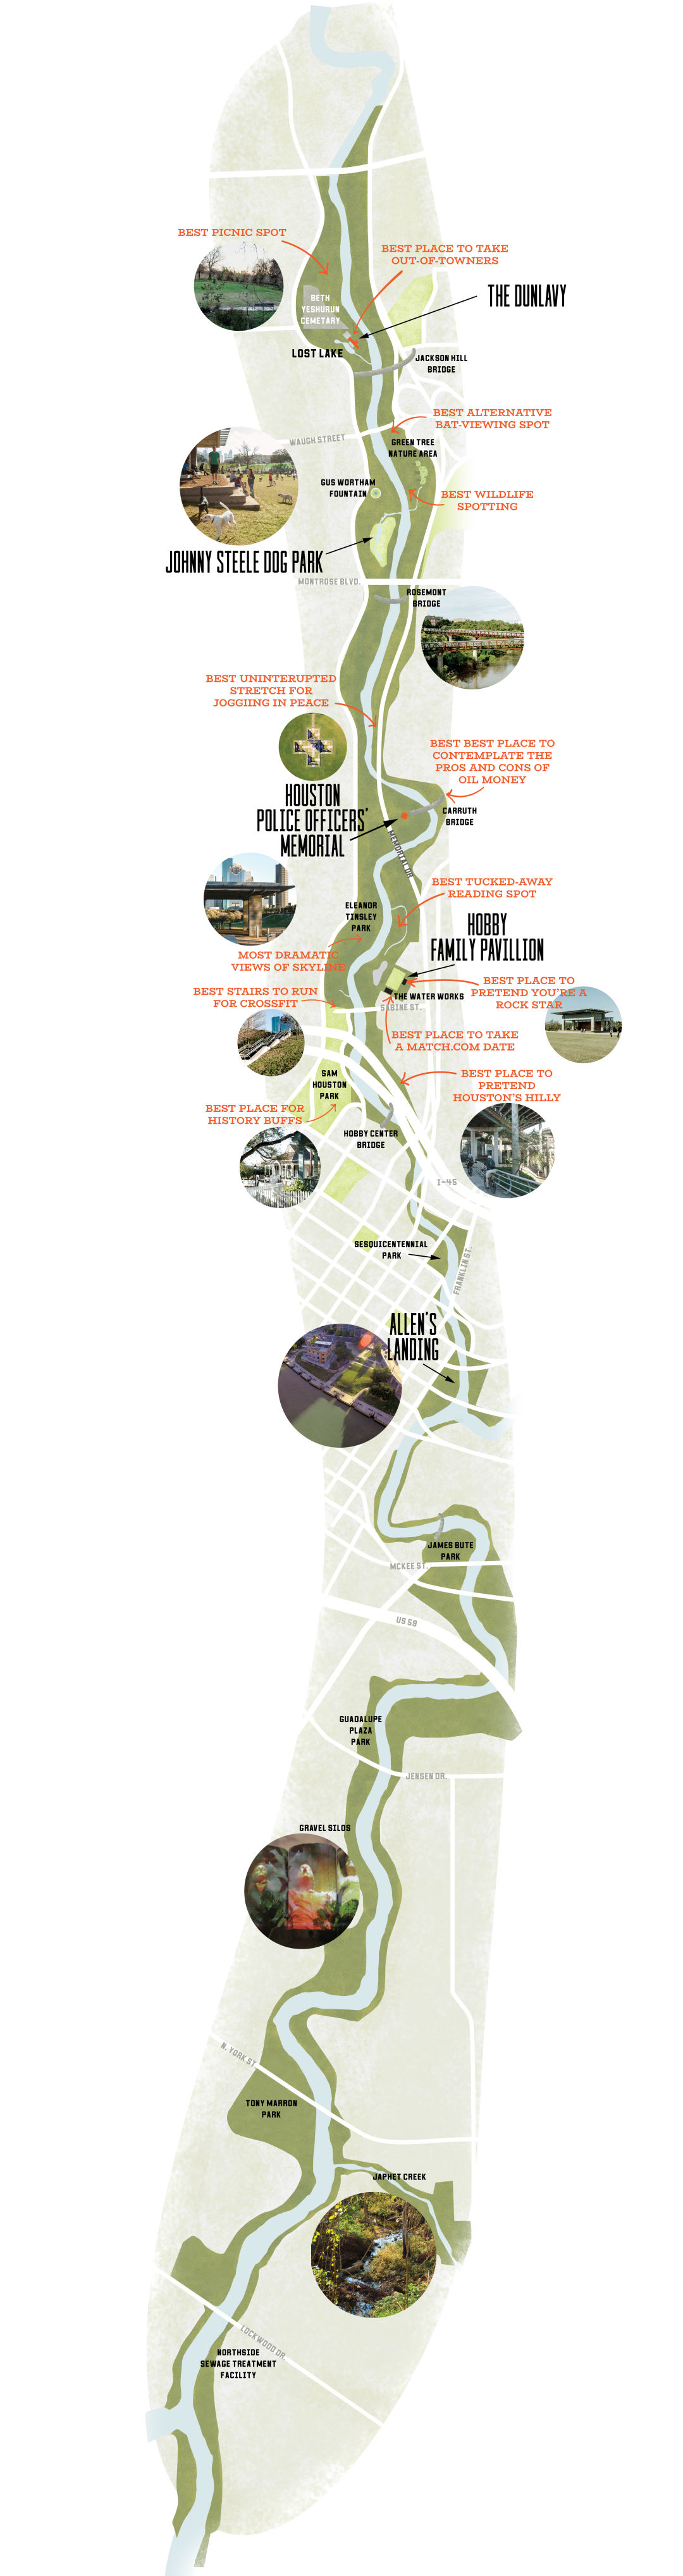 Buffalo bayou park map 3 bsewhm